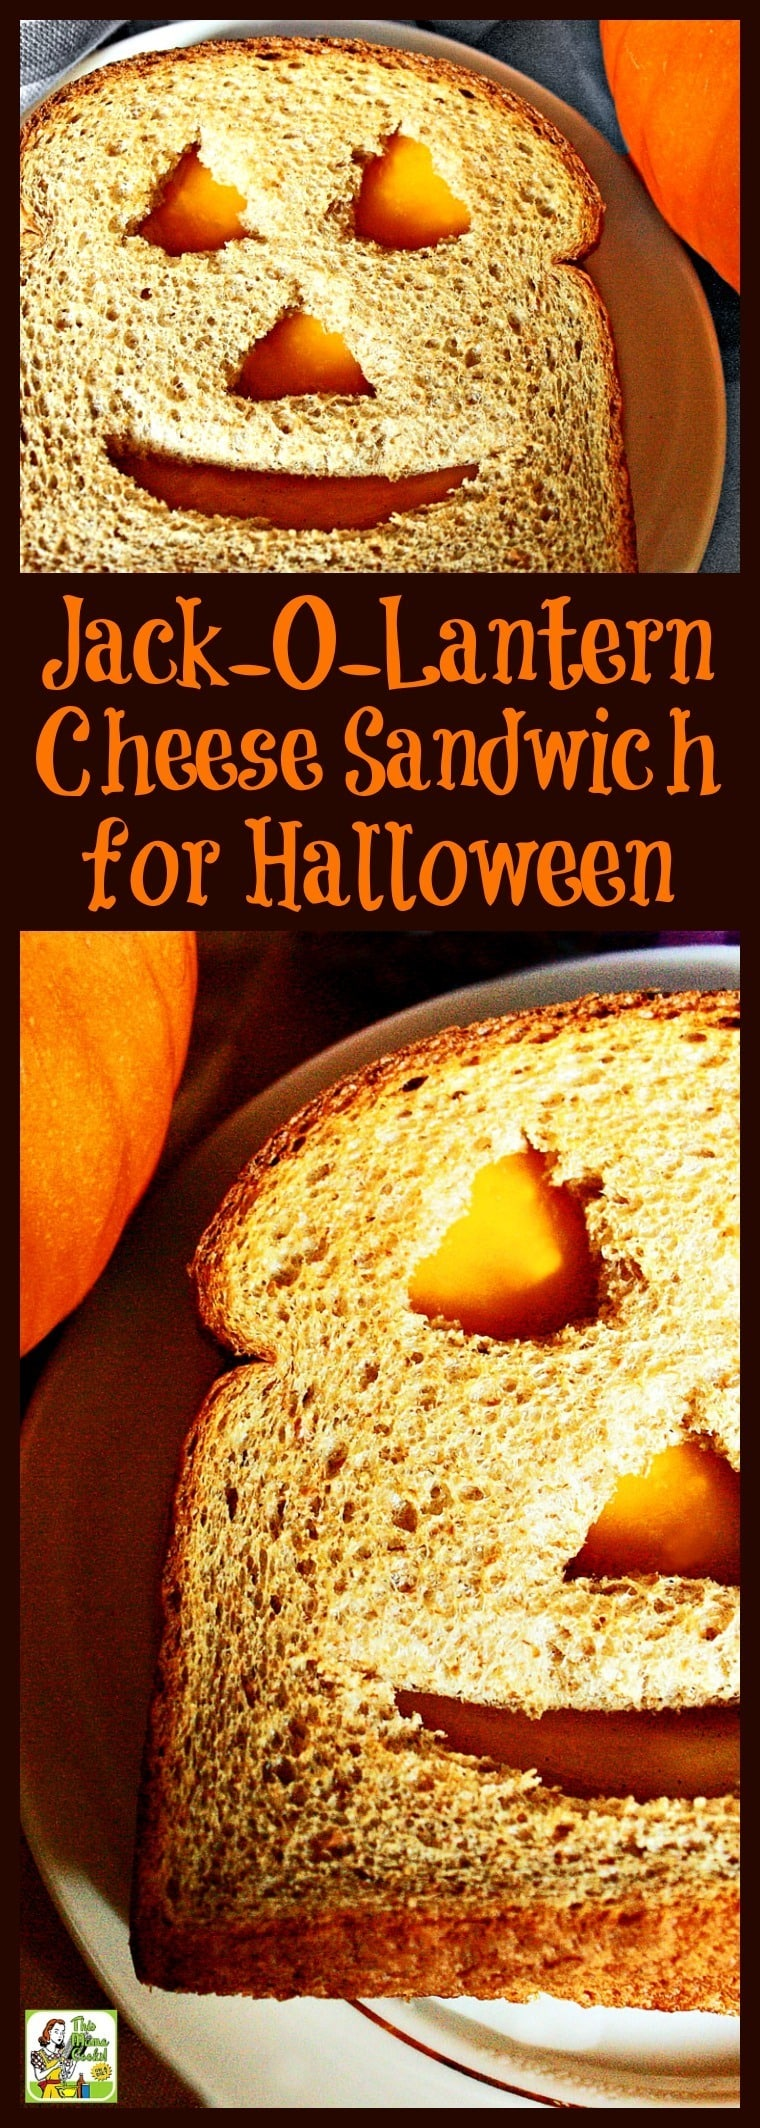 Need Halloween sandwich ideas kids love? Make a Jack-O-Lantern Cheese Sandwich! This Jack-O-Lantern Cheese Sandwich for Halloween recipe is a healthy cheese sandwich for Halloween kids parties. So easy to make that the kids can do it themselves! Click to get this fun and healthy Halloween recipe. Can be made gluten free.